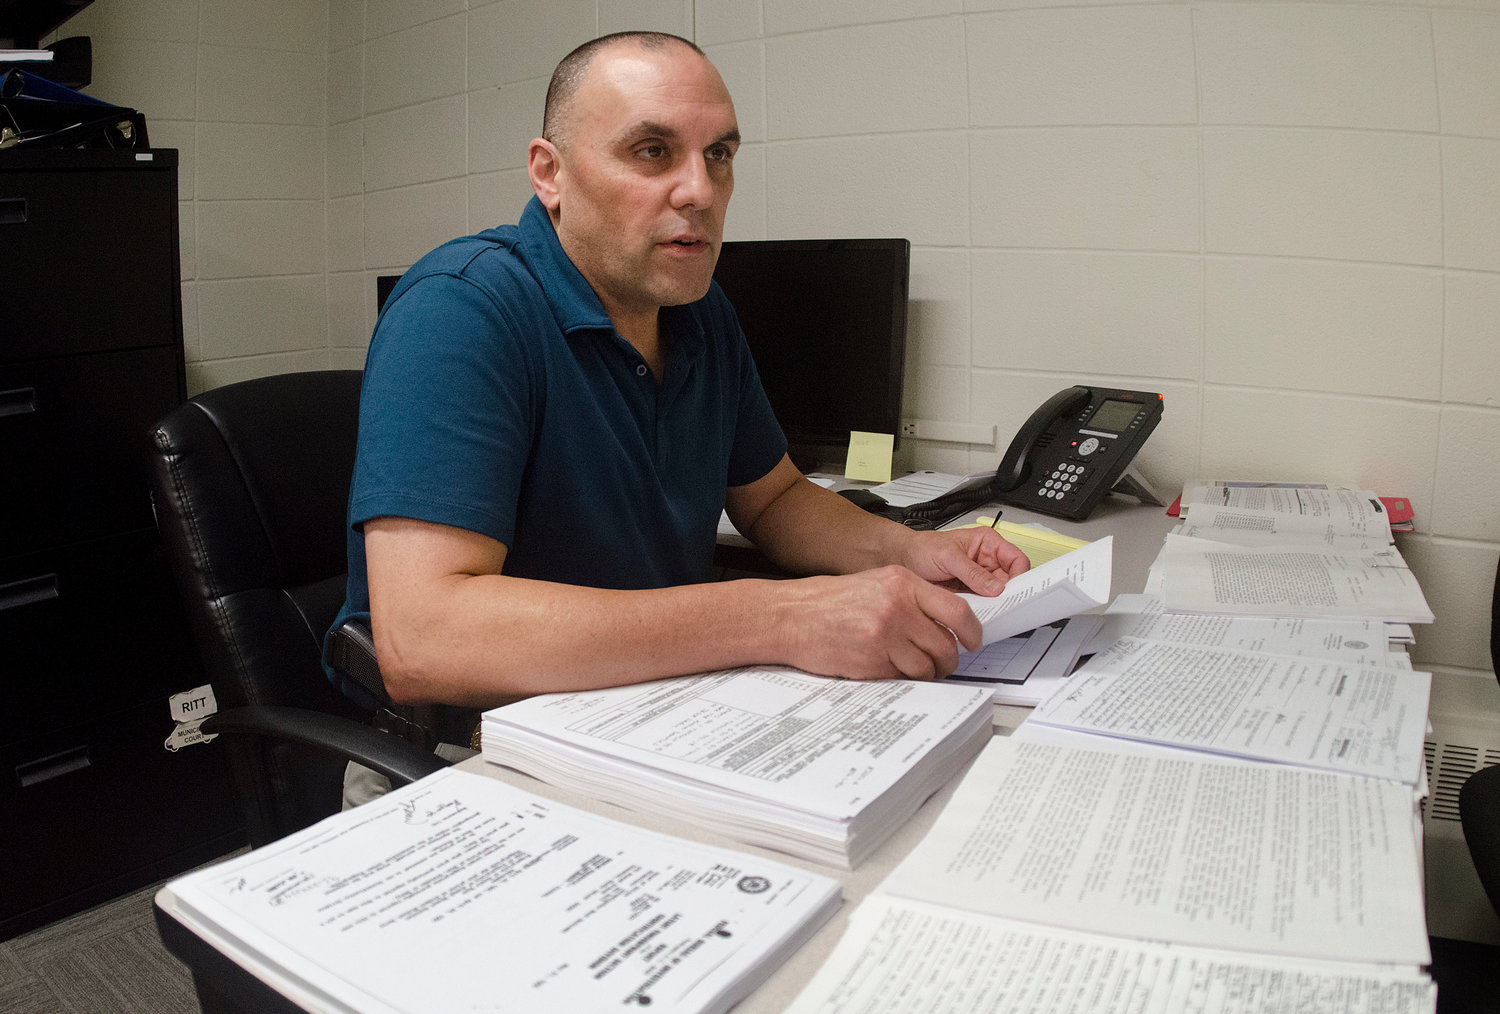 Ptlm. George Lefebvre is temporarily driving a desk instead of a cruiser, as the drop in calls permits him to turn his attention to the department's cold case files.